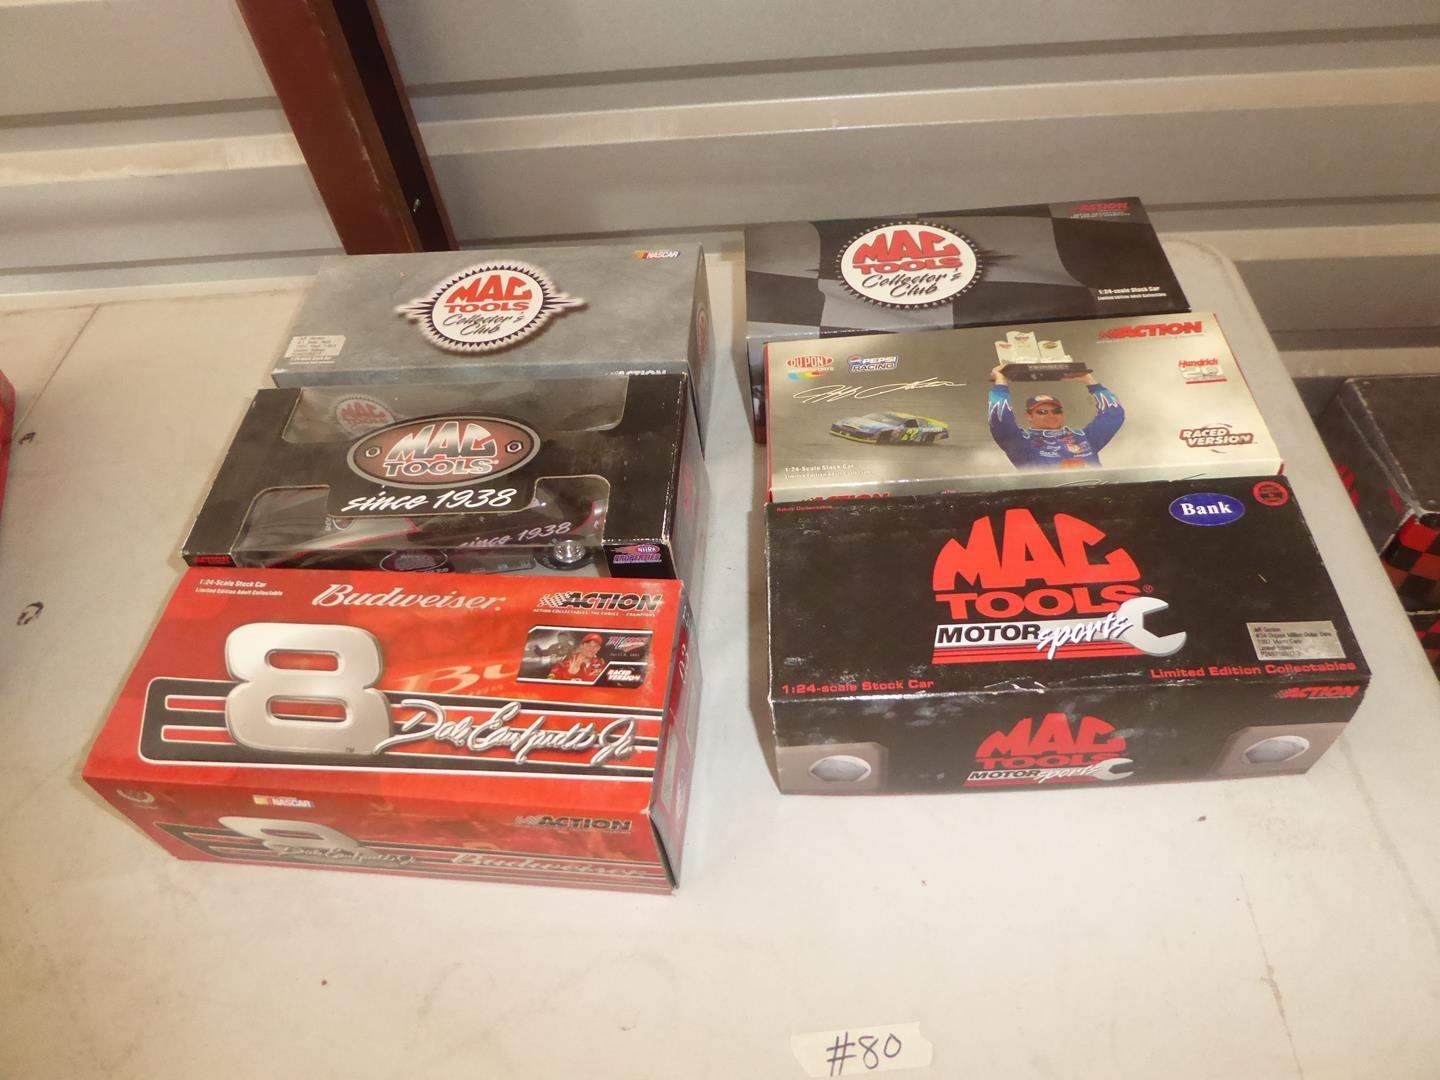 Lot # 80 - Dale Earnhardt Jr., Jeff Gordon & Mac Tools Adult Collectible Cars & Bank (NIB) (main image)